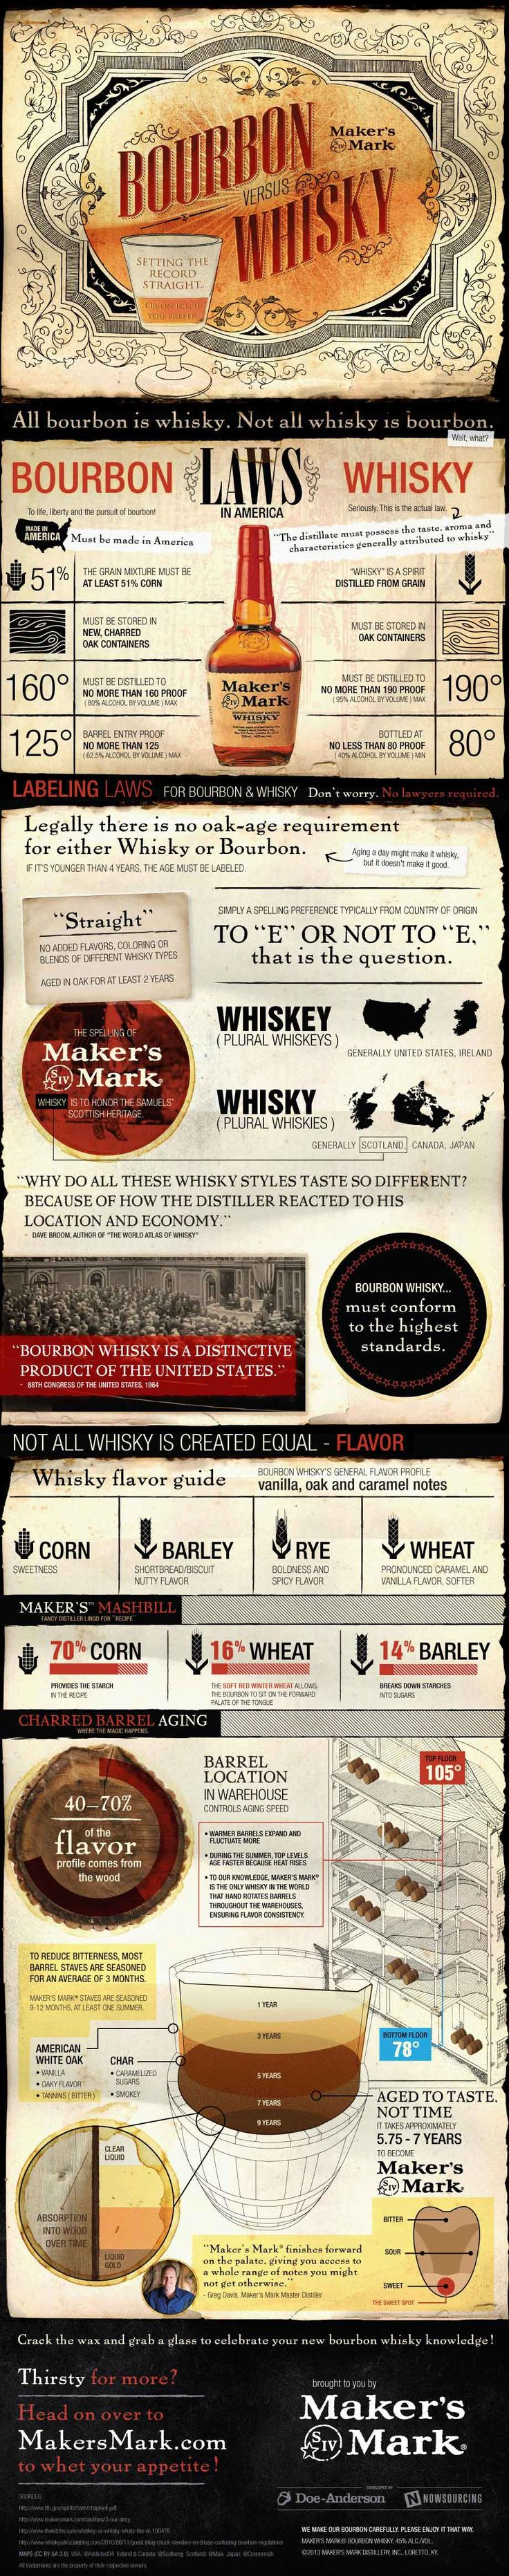 One of the best infographic-type breakdowns on a very pleasing subject #bourbon -vs- #whiskey for Francesca tripoli!!!!